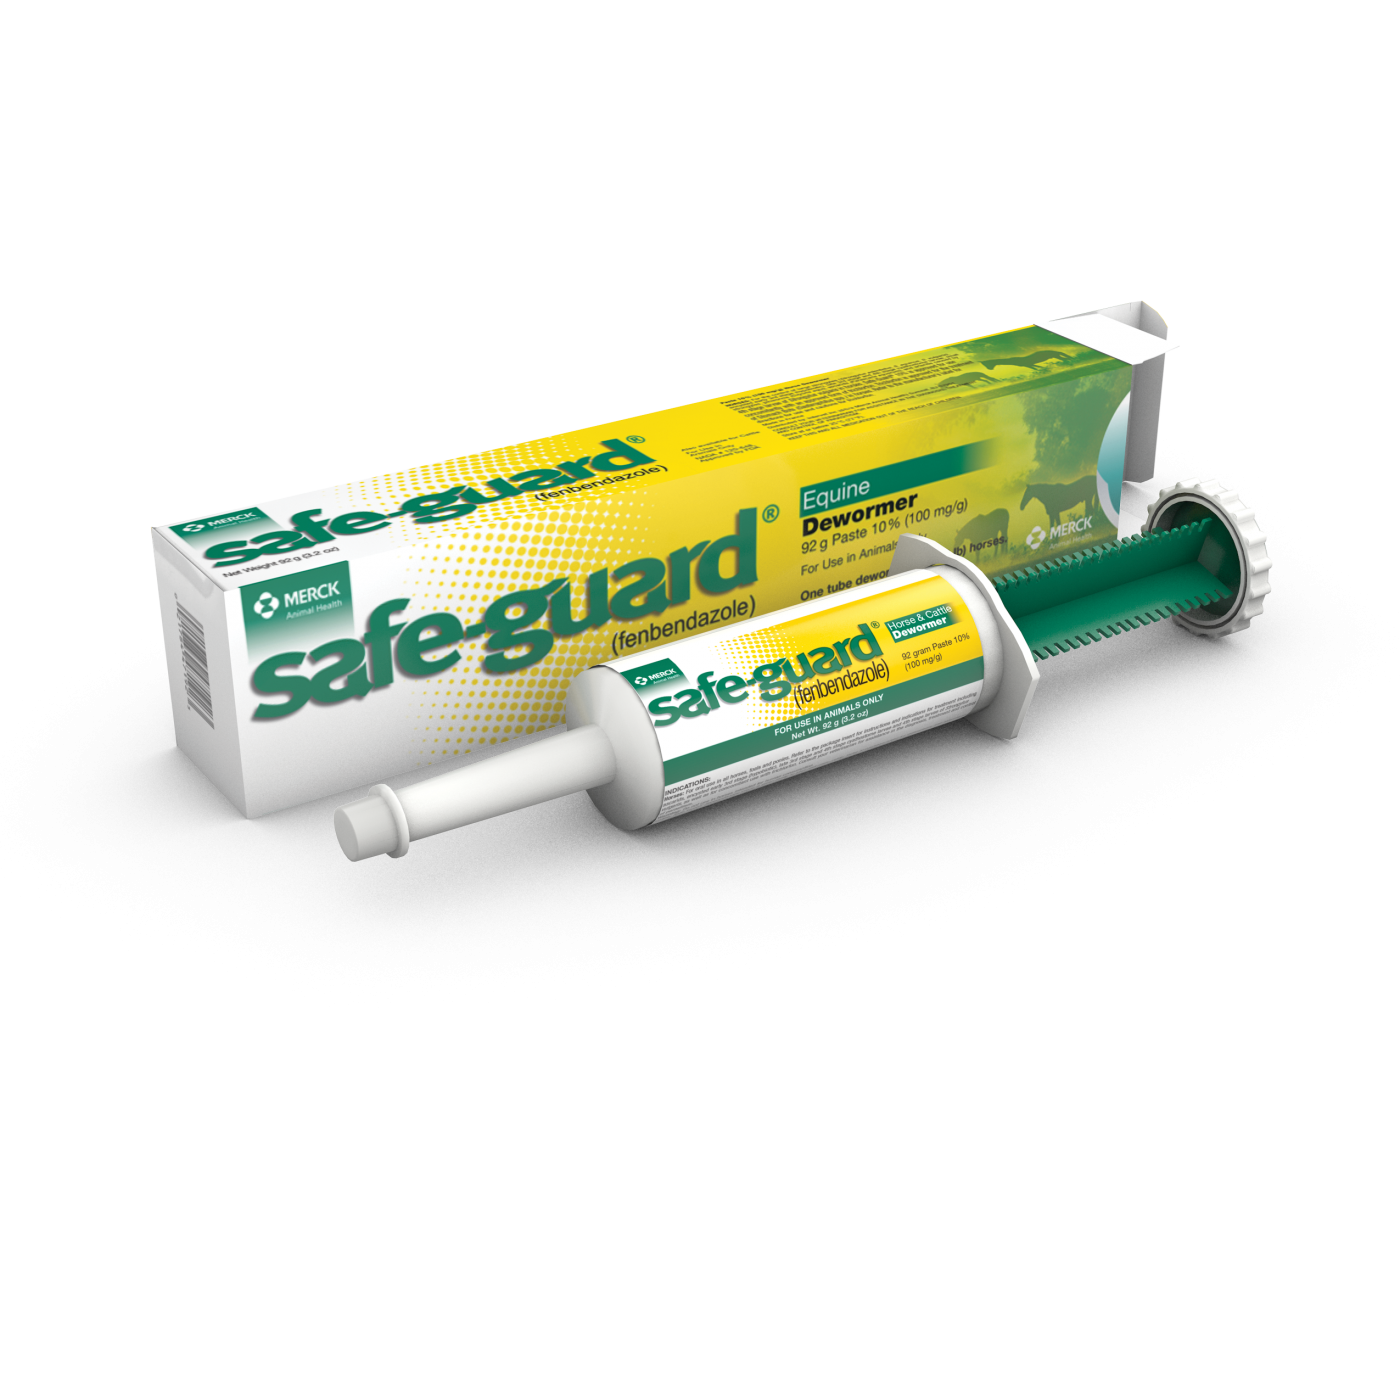 Safeguard paste 92g